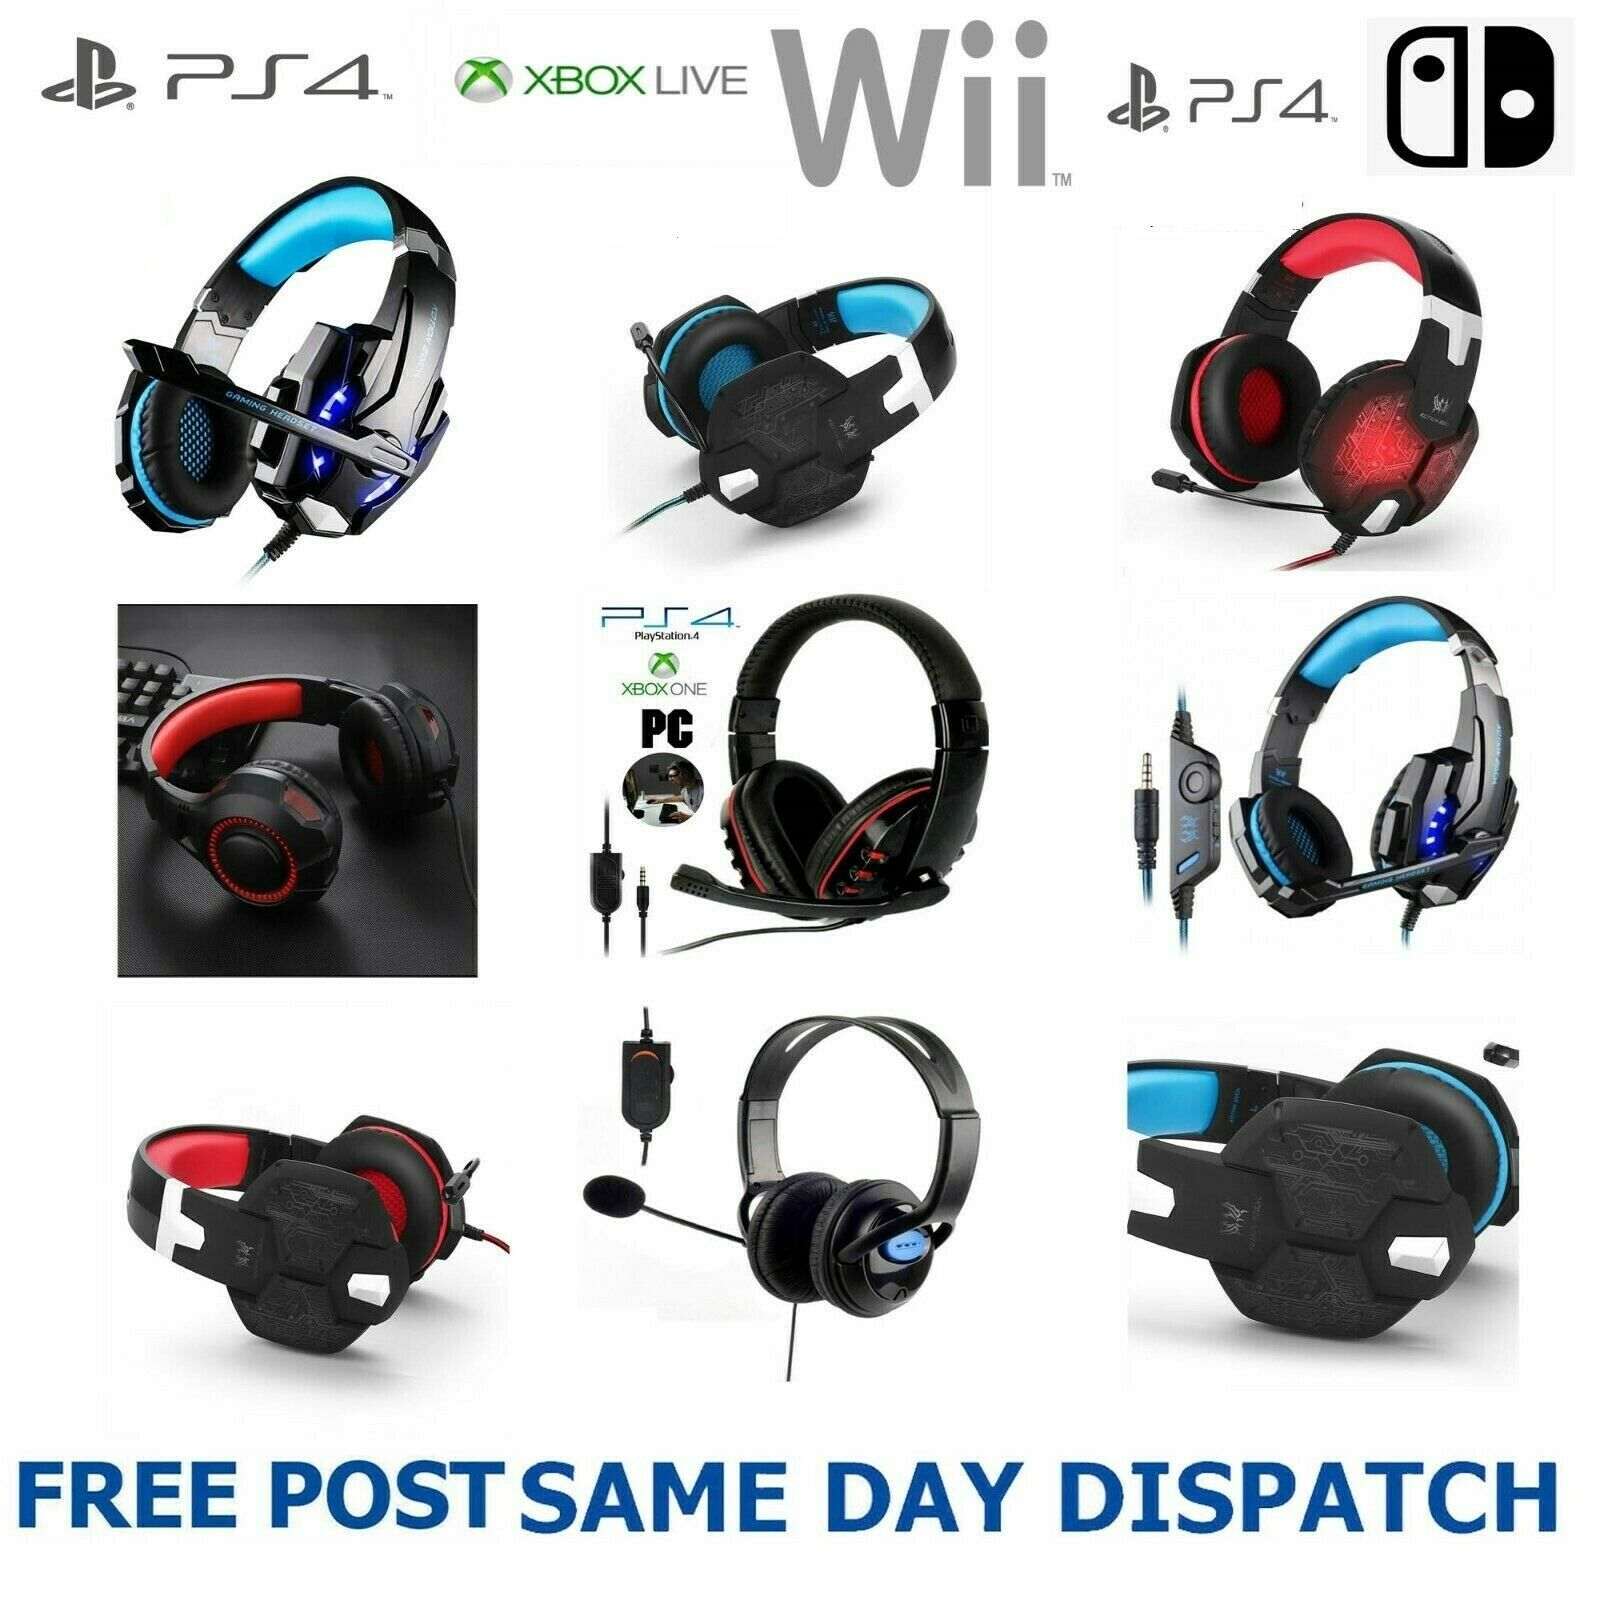 New Pro Stereo Surround Live Gaming Headset For PS4 Wii XBOX One Switch